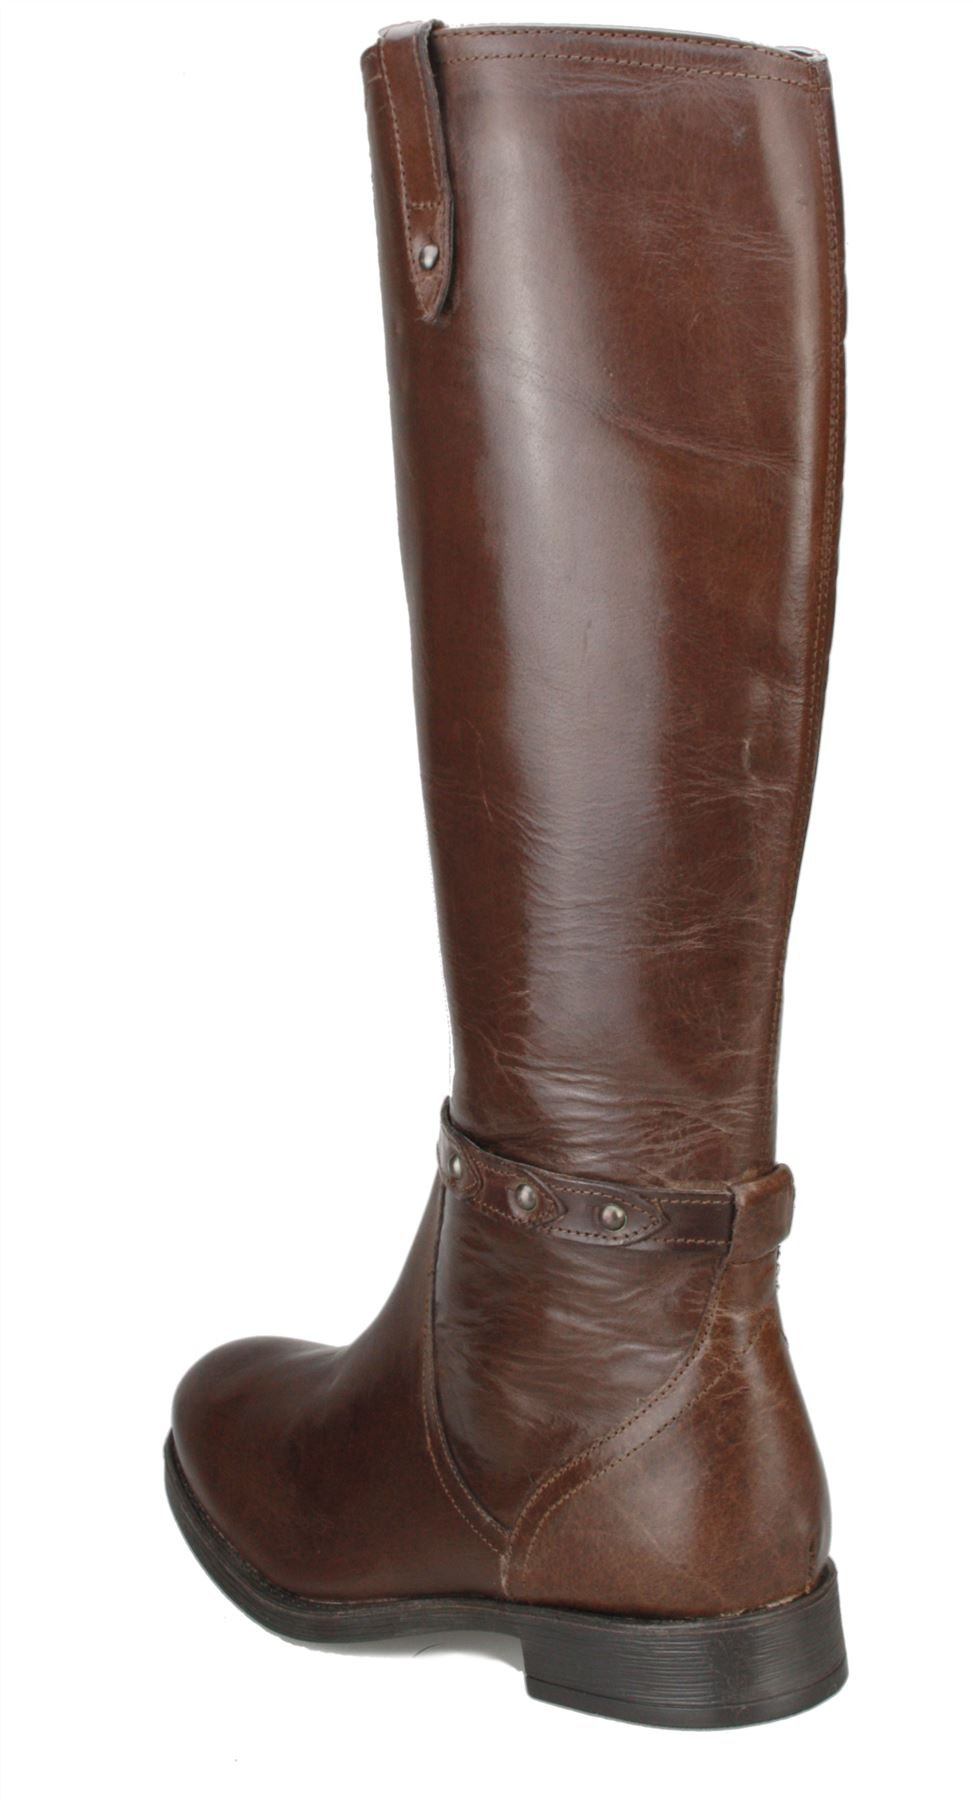 444e10175fa Ladies Real Leather Knee High Low Heel Flat Zip Biker Riding Style ...